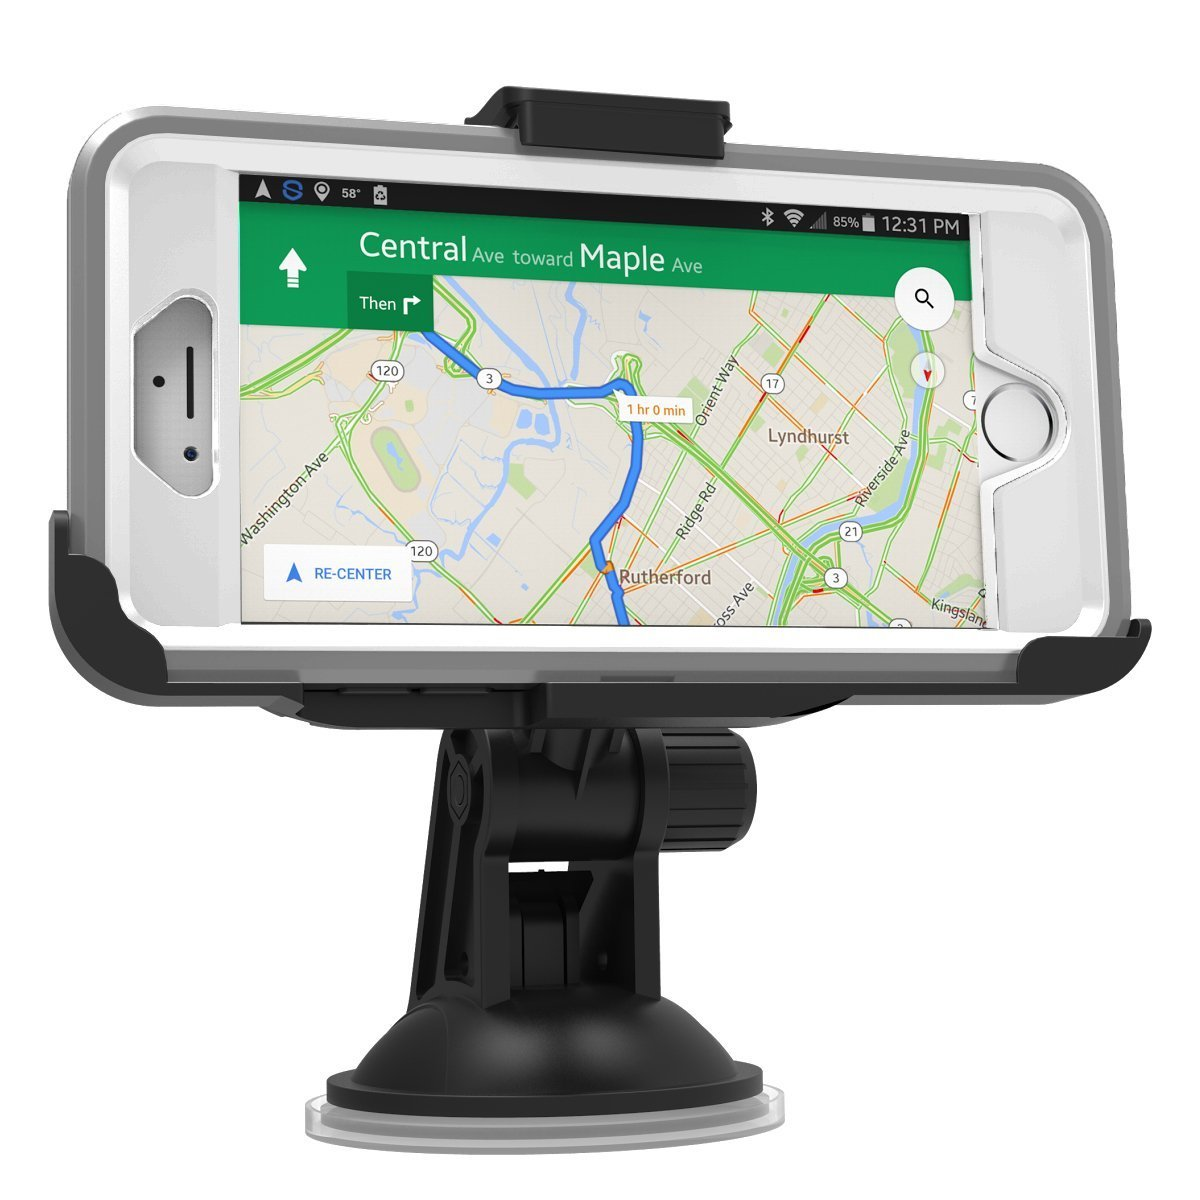 OtterBox Defender Case Encased Car Mount for iPhone 6 Plus Compatible with Otterbox Defender case ONLY 5.5 Encased for Otterbox Defender